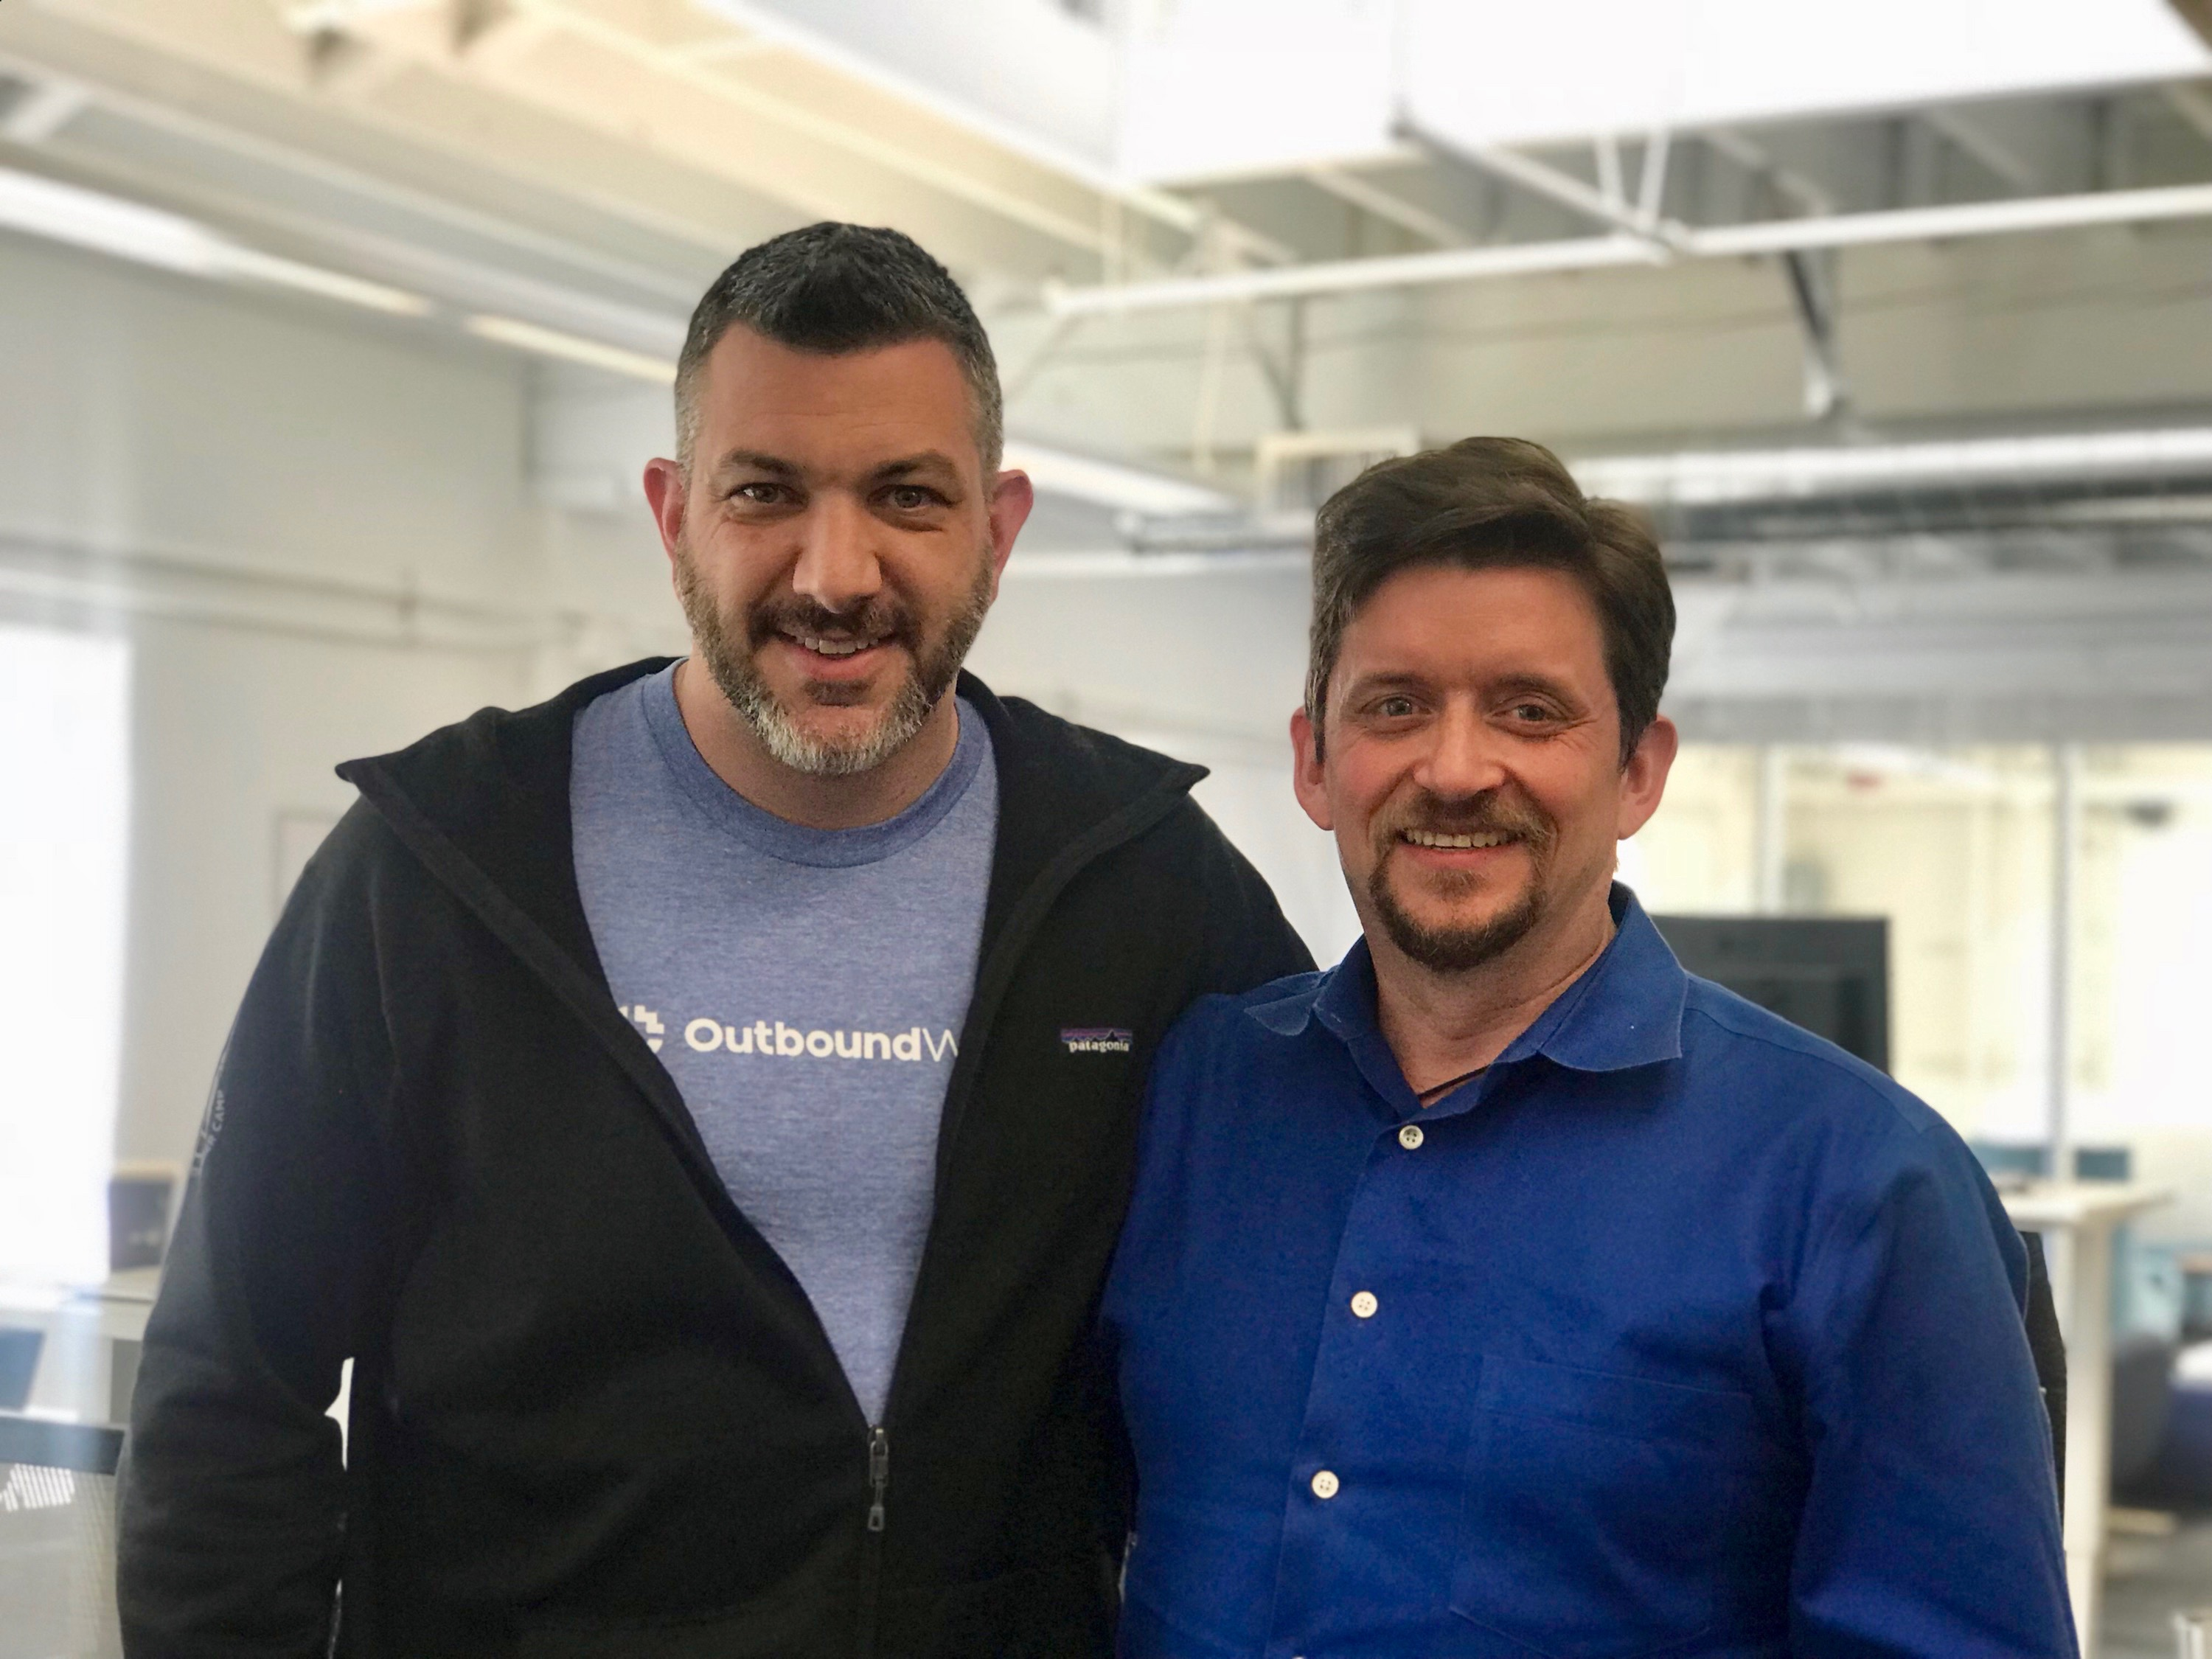 OutboundWorks Co-Founder